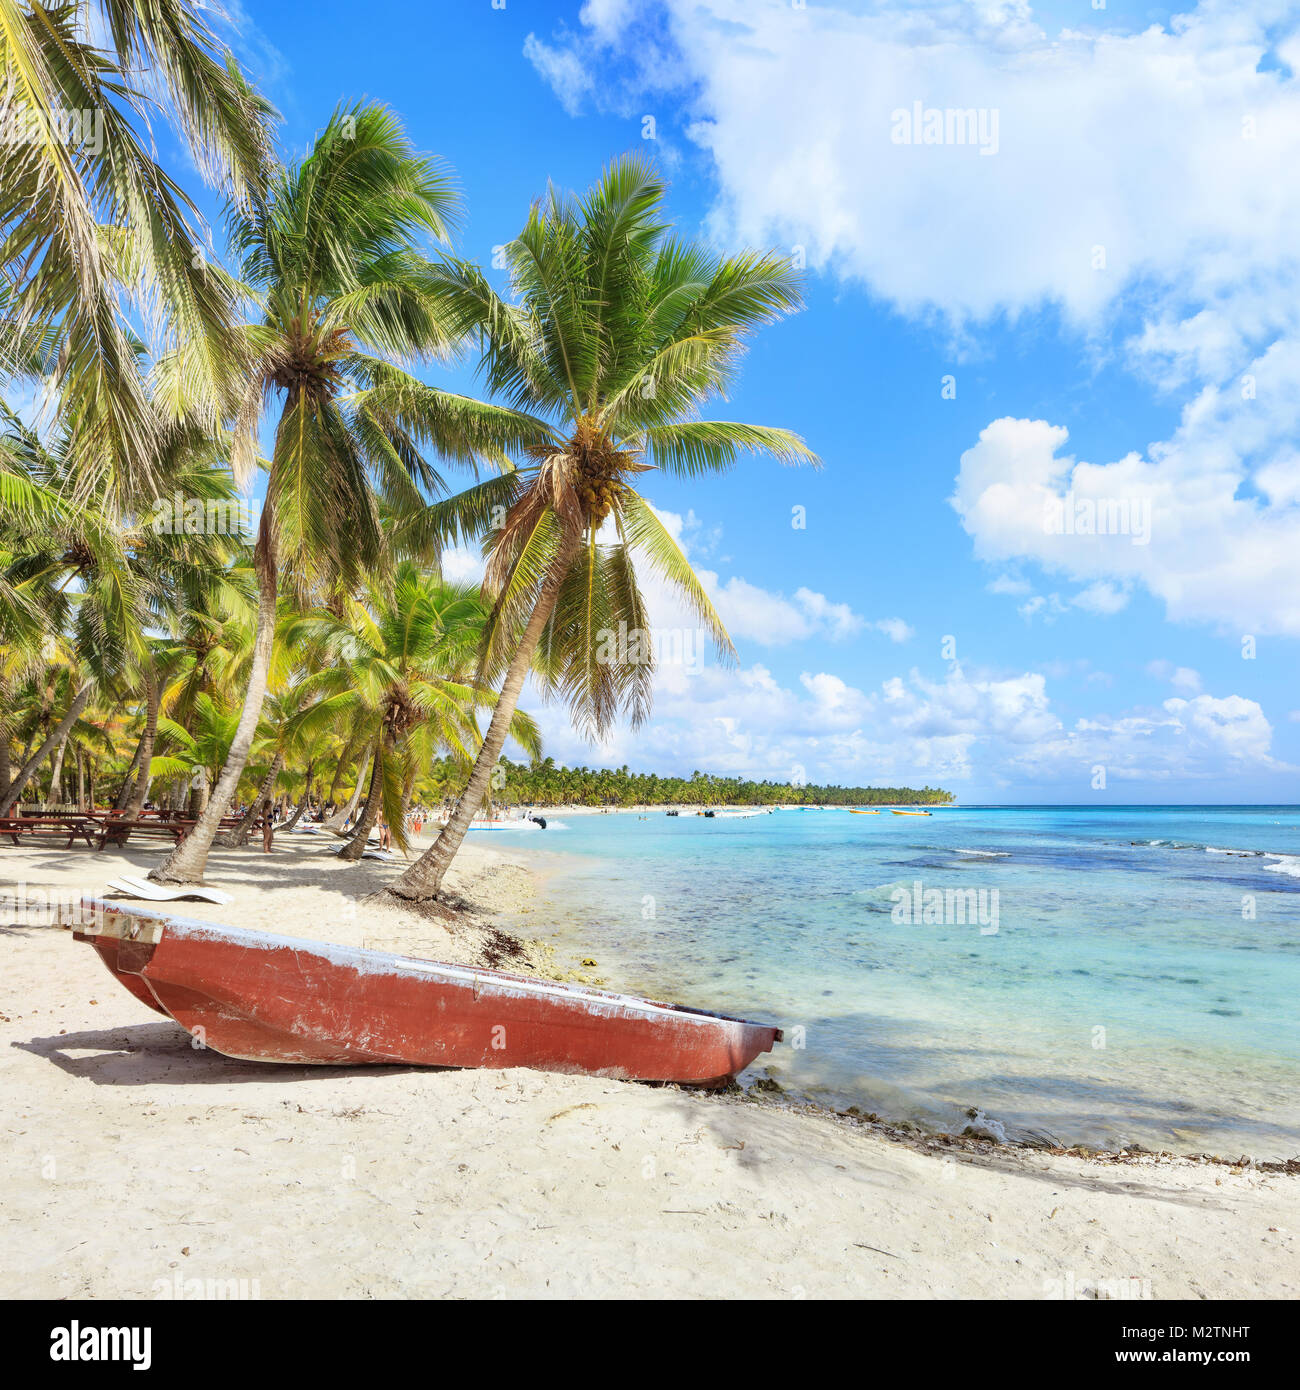 Vacation in Dominican Republic - Stock Image